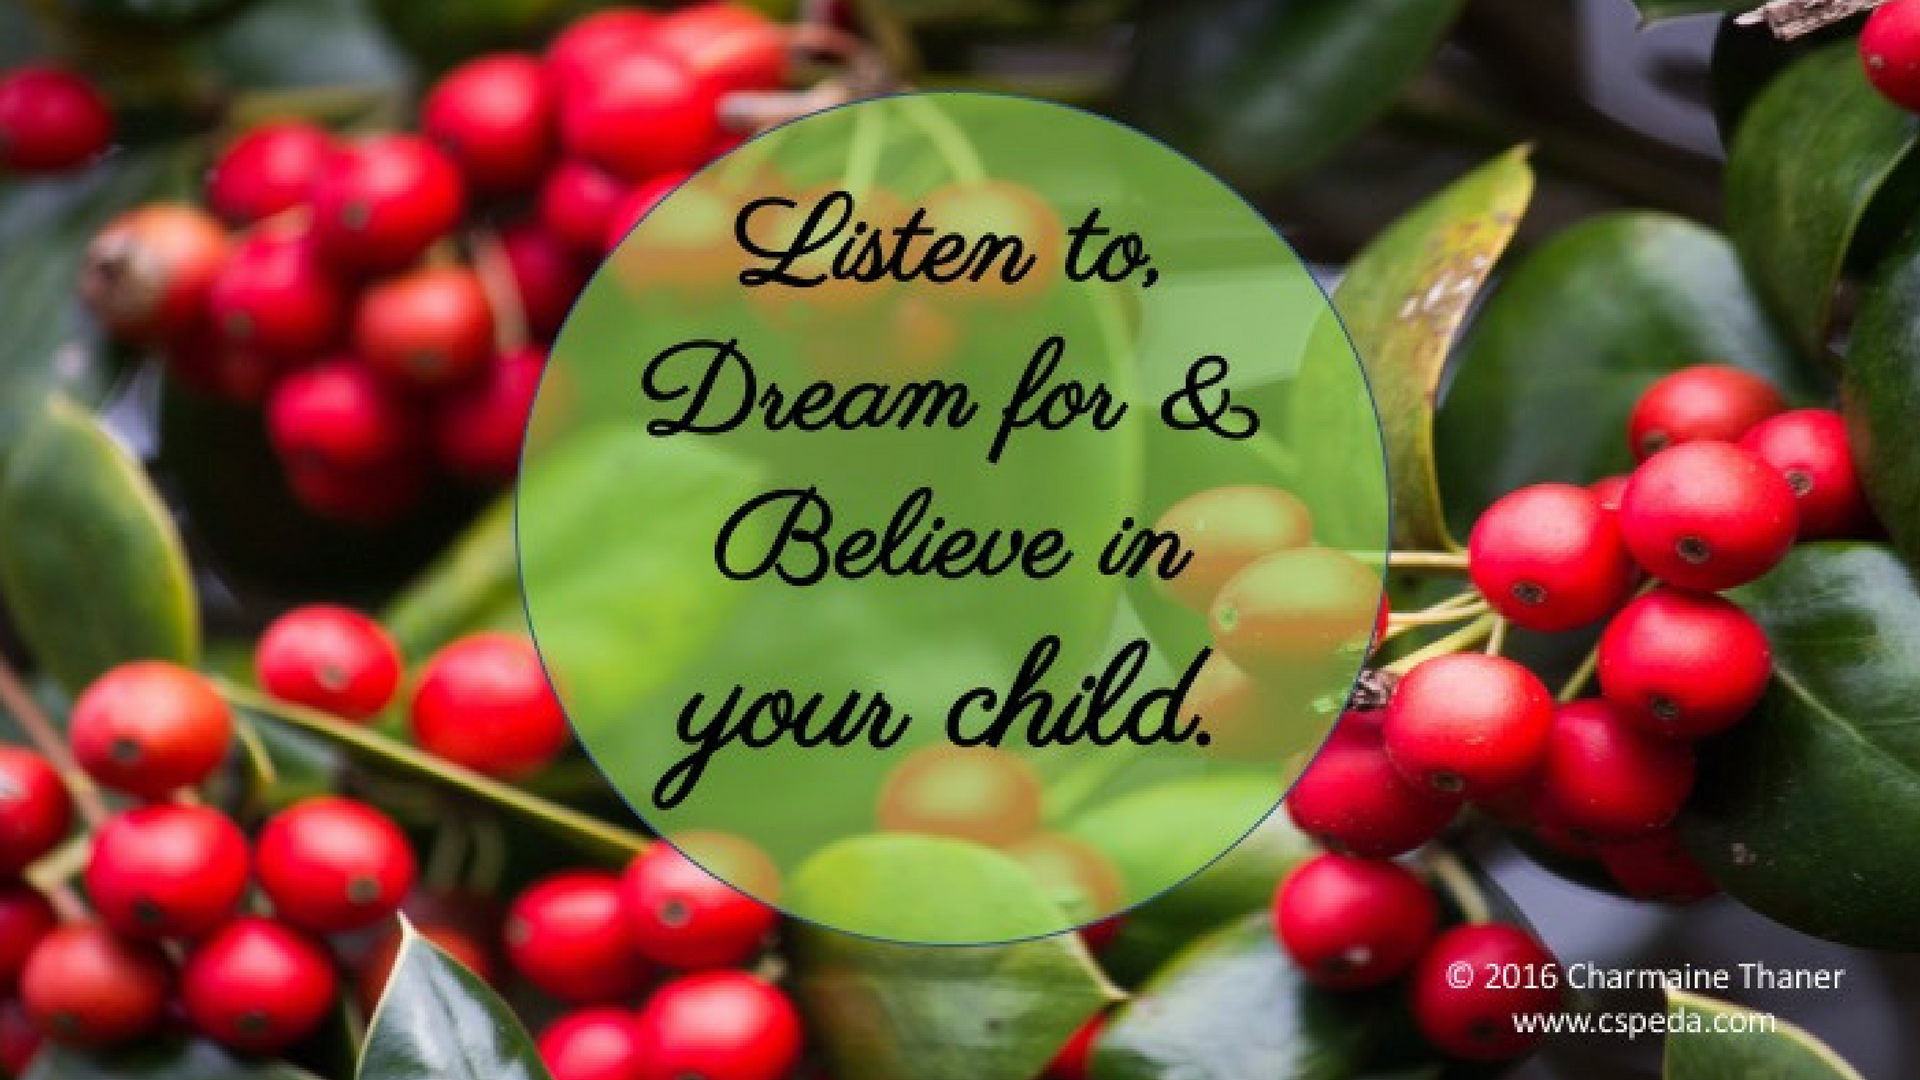 listen to, dream for and believe in your child